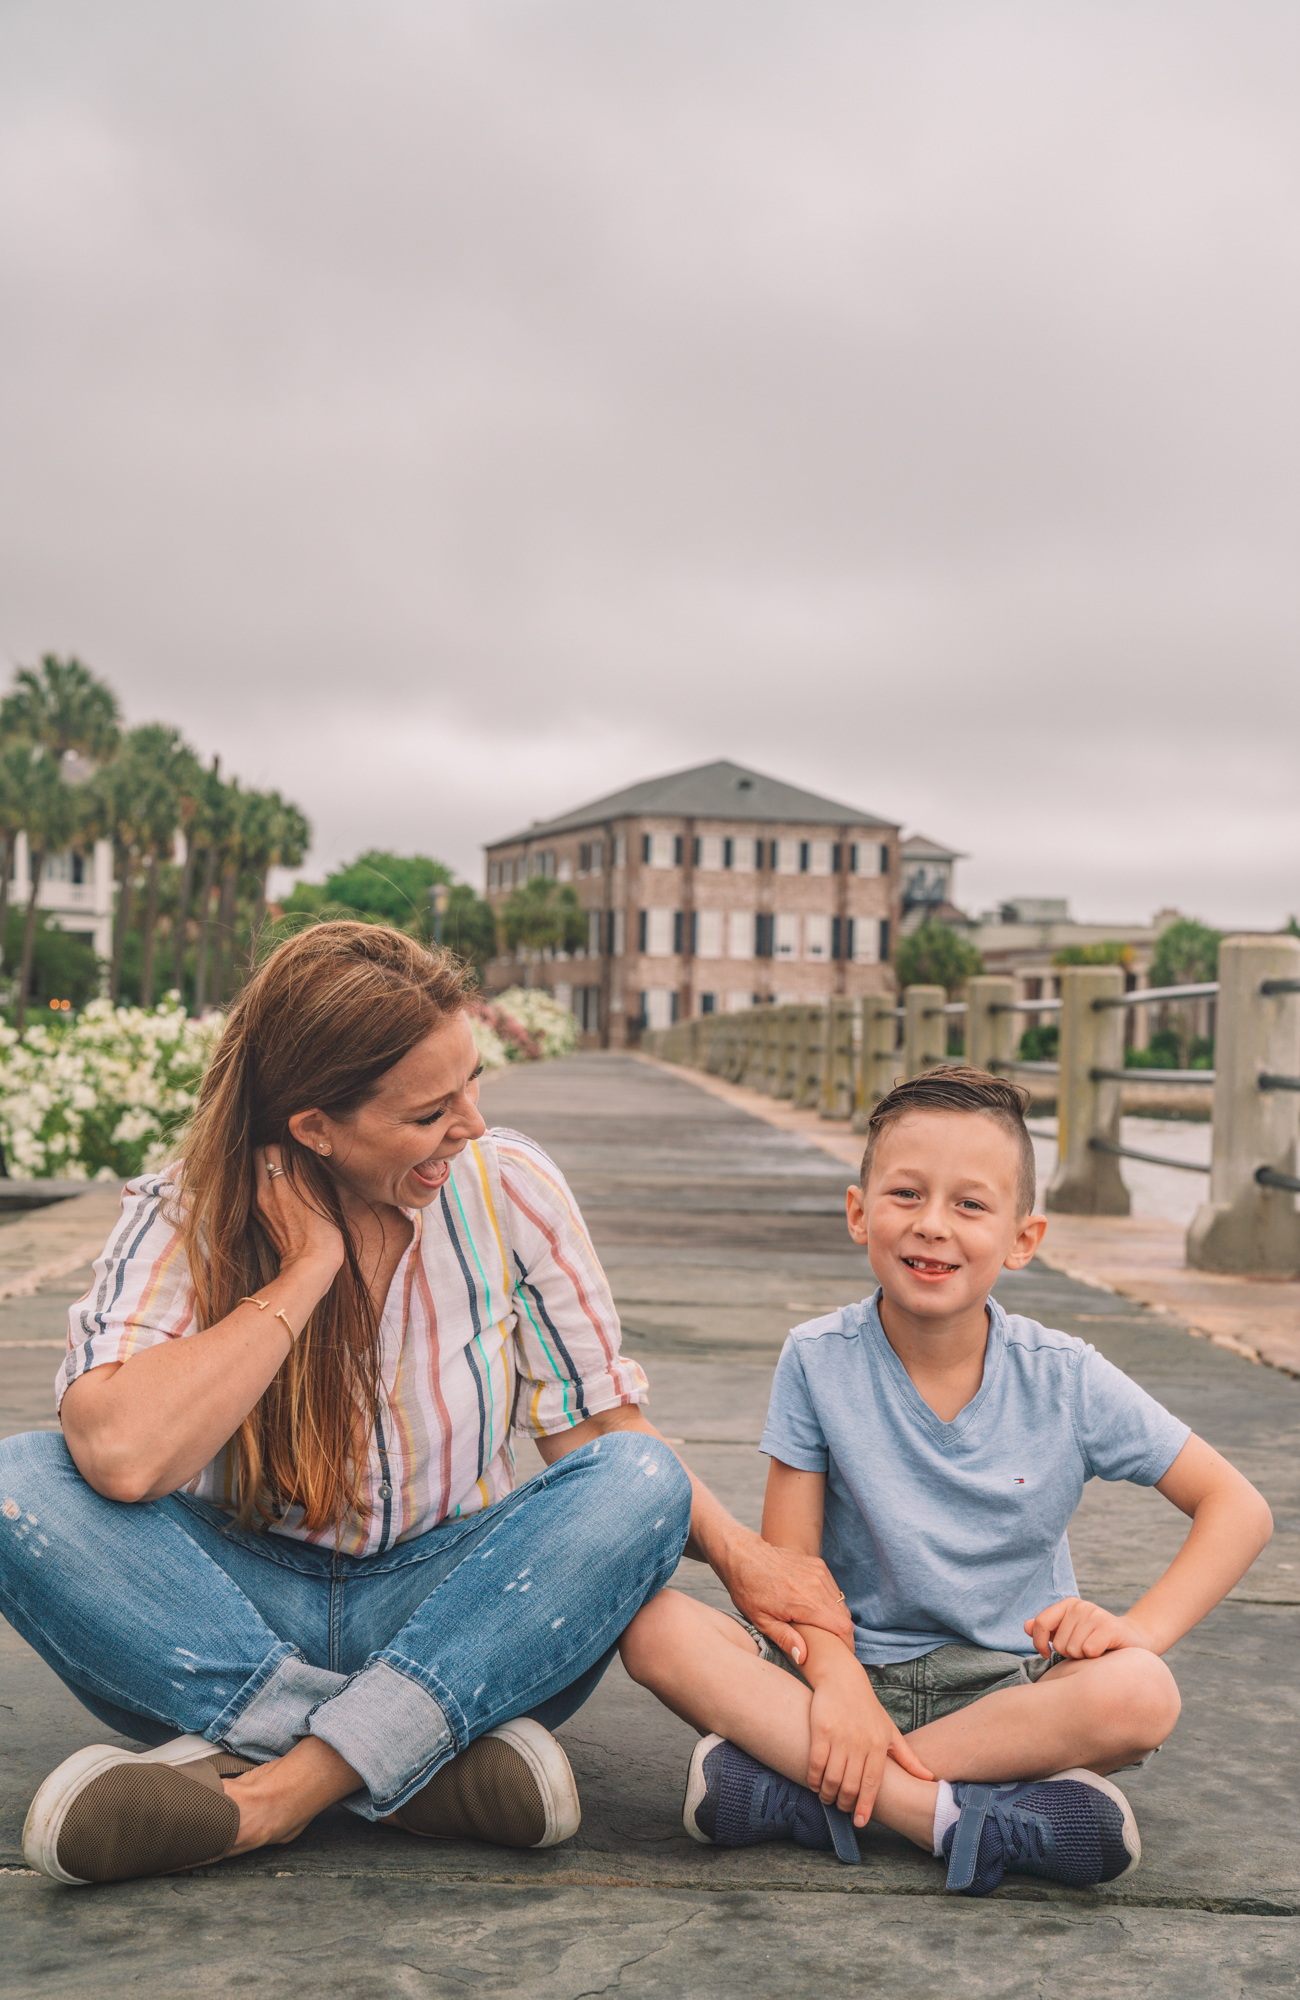 Things to do in Charleston sc with kids - a young boy and his grandma play on the sidewalk with antebellum style houses in the background.